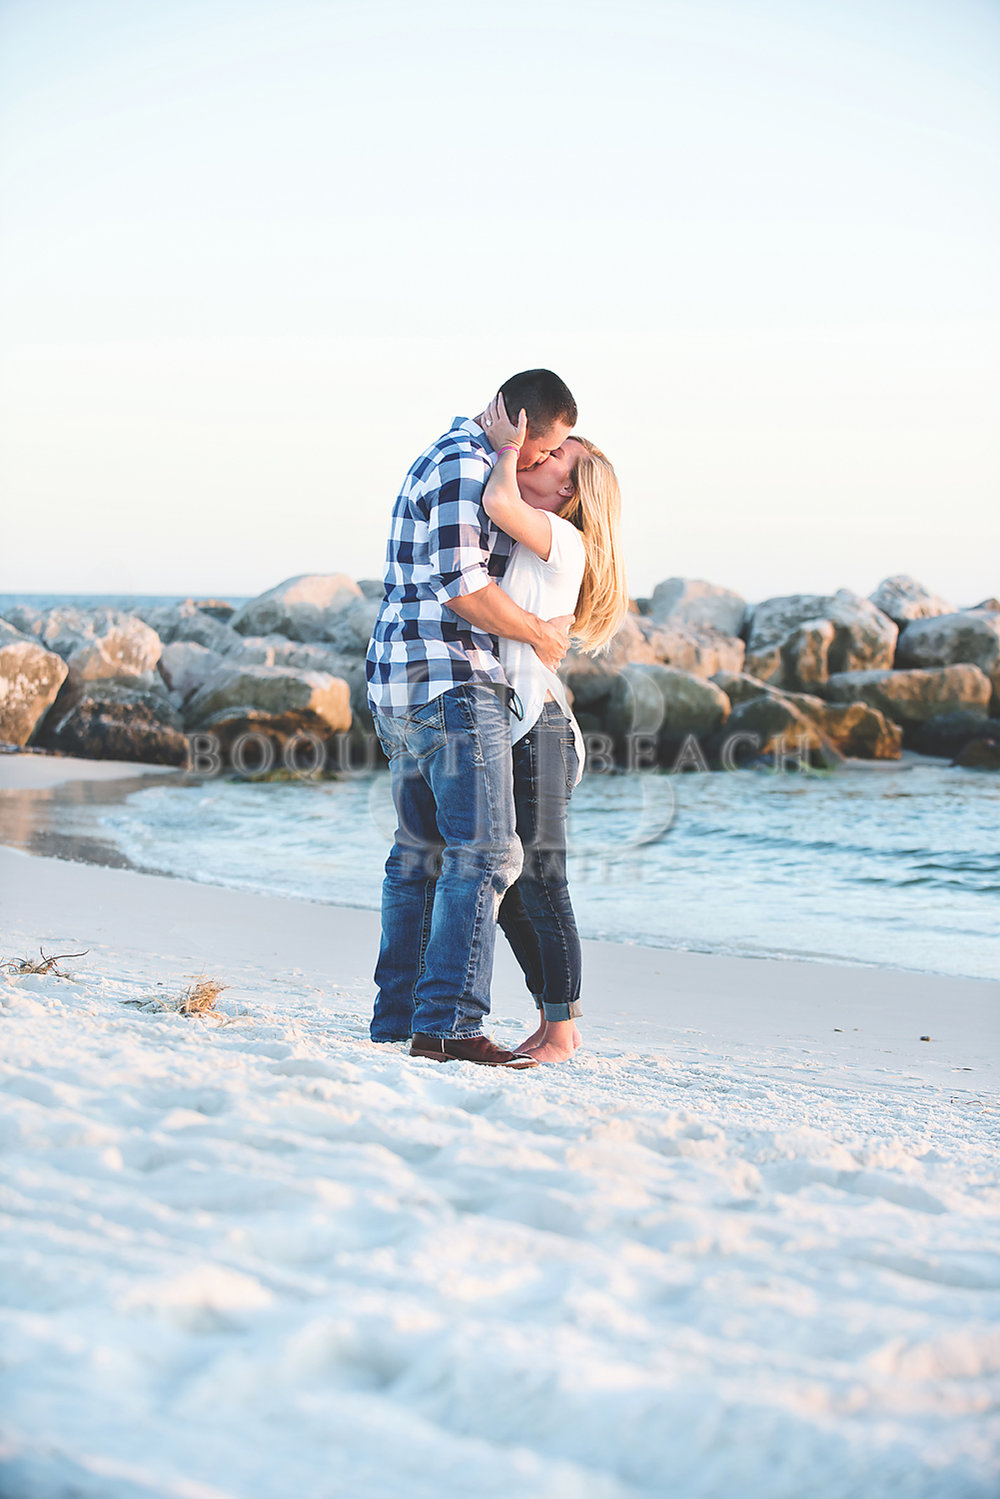 Hamilton Boquet Beach Portraits15a copy.jpg